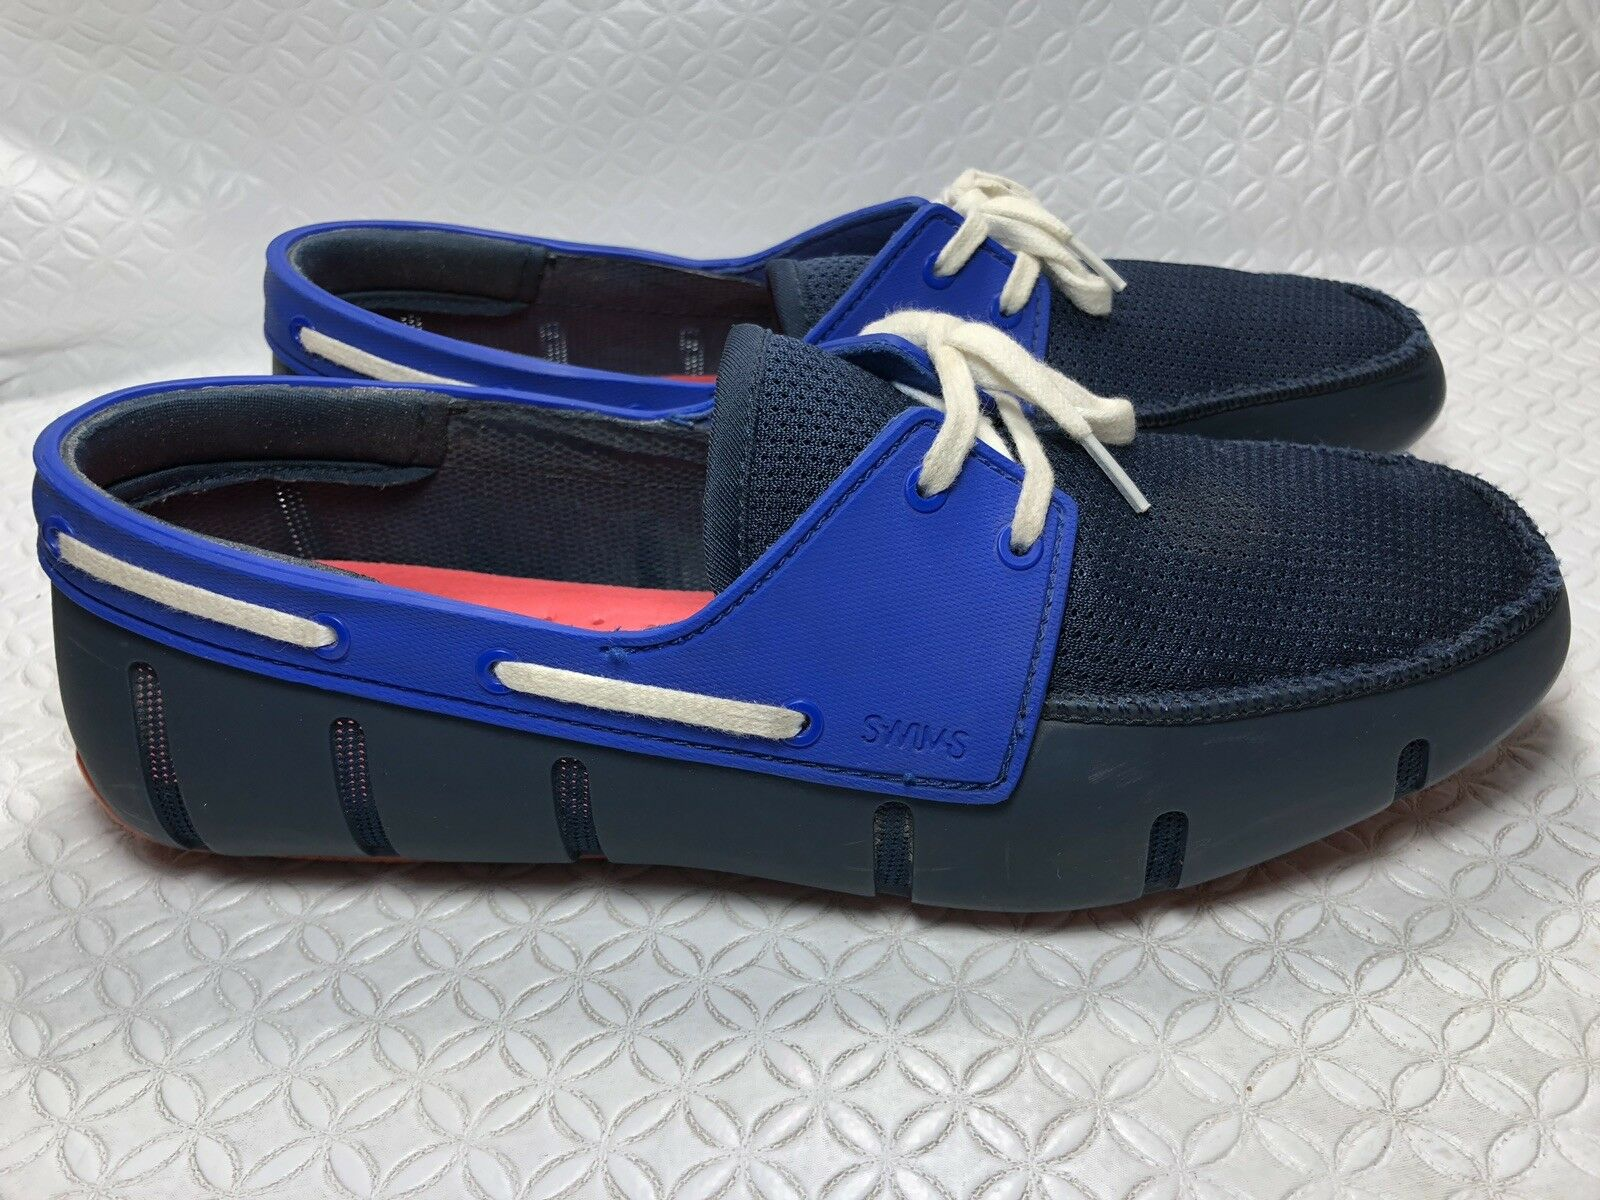 Swims Breeze Leap Lazer Men's bluee Boat shoes Loafers Size-7